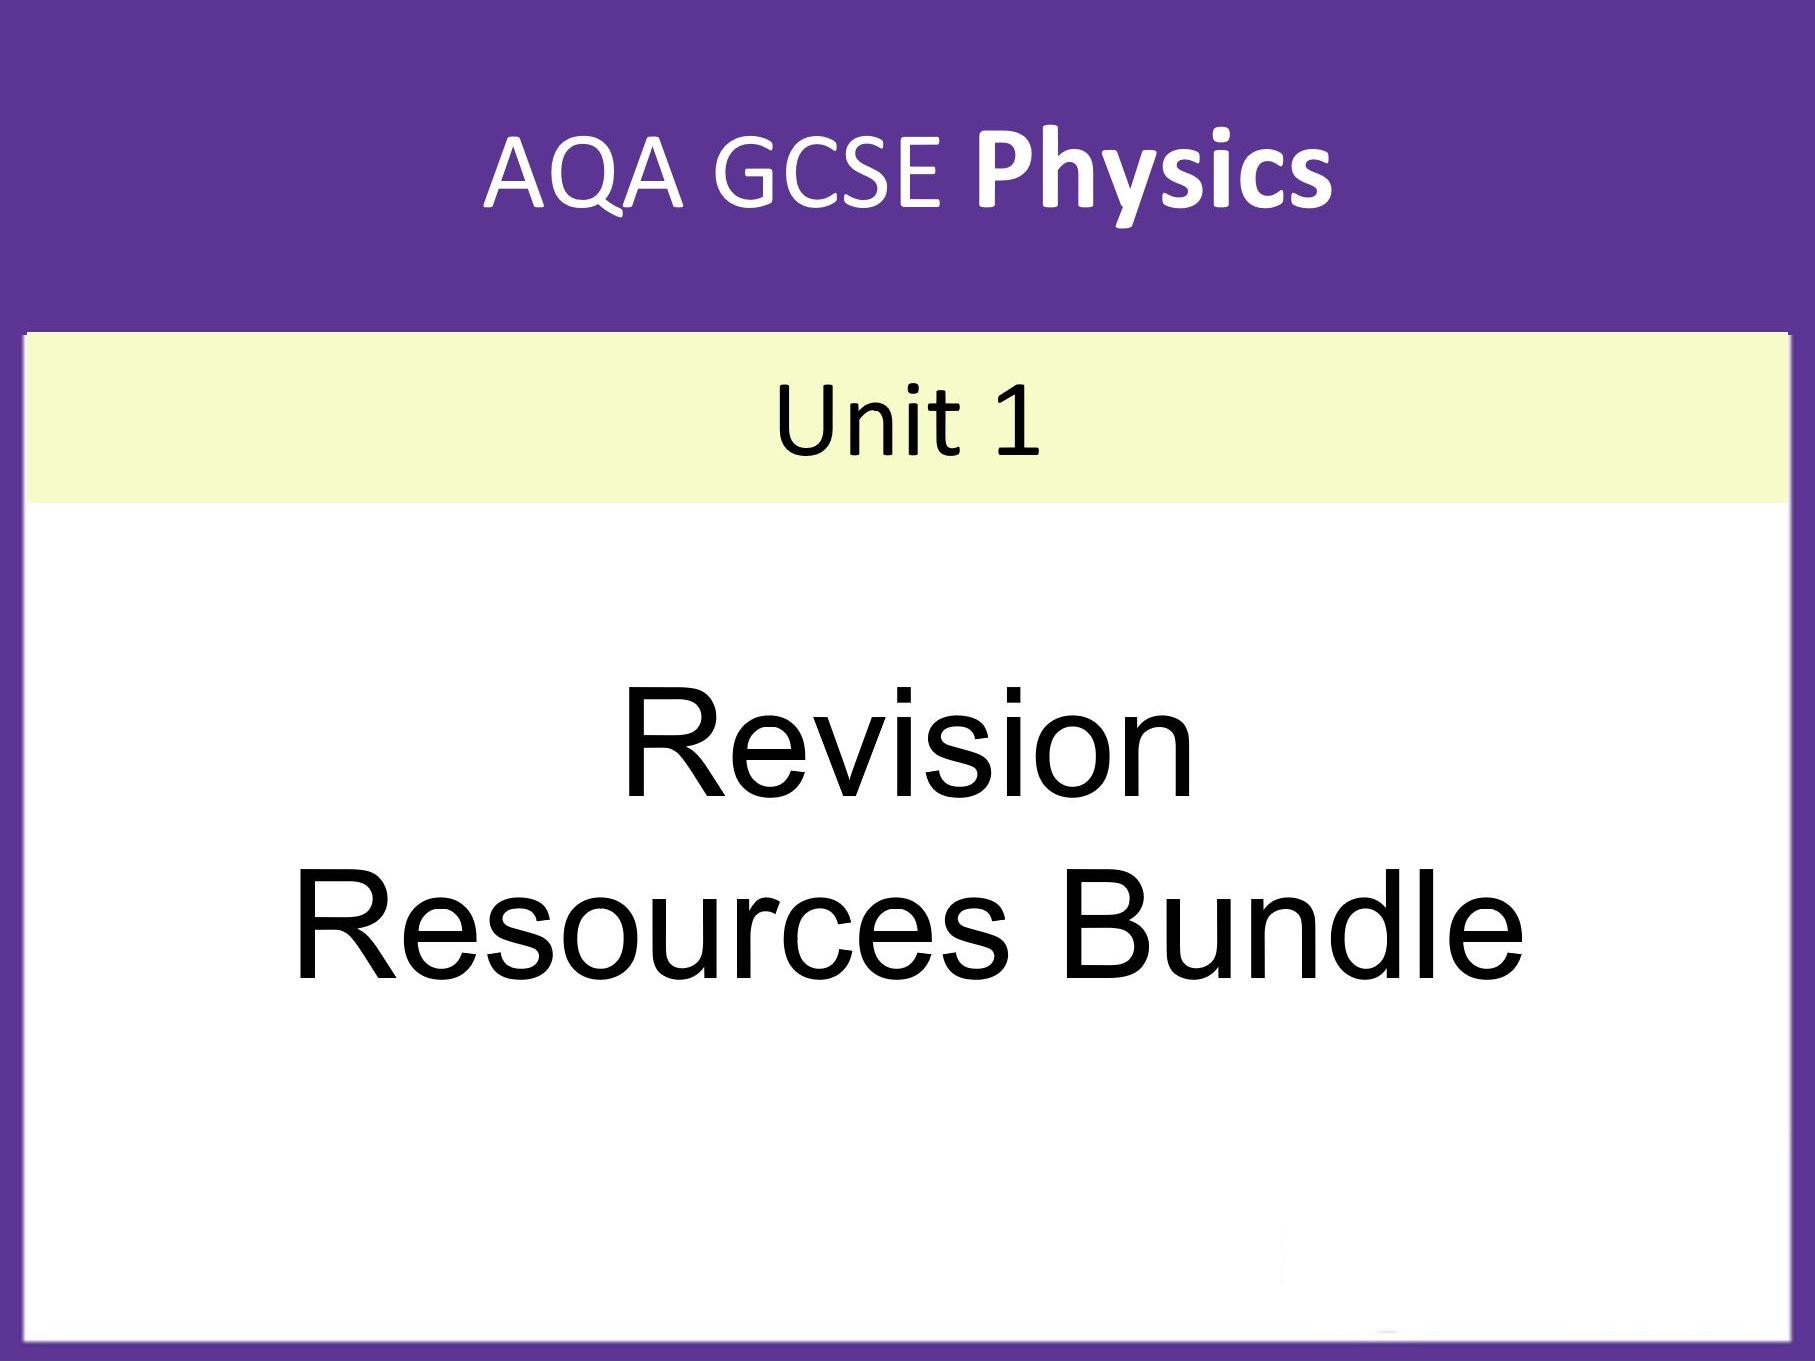 AQA GCSE Physics: Unit 1 revision materials